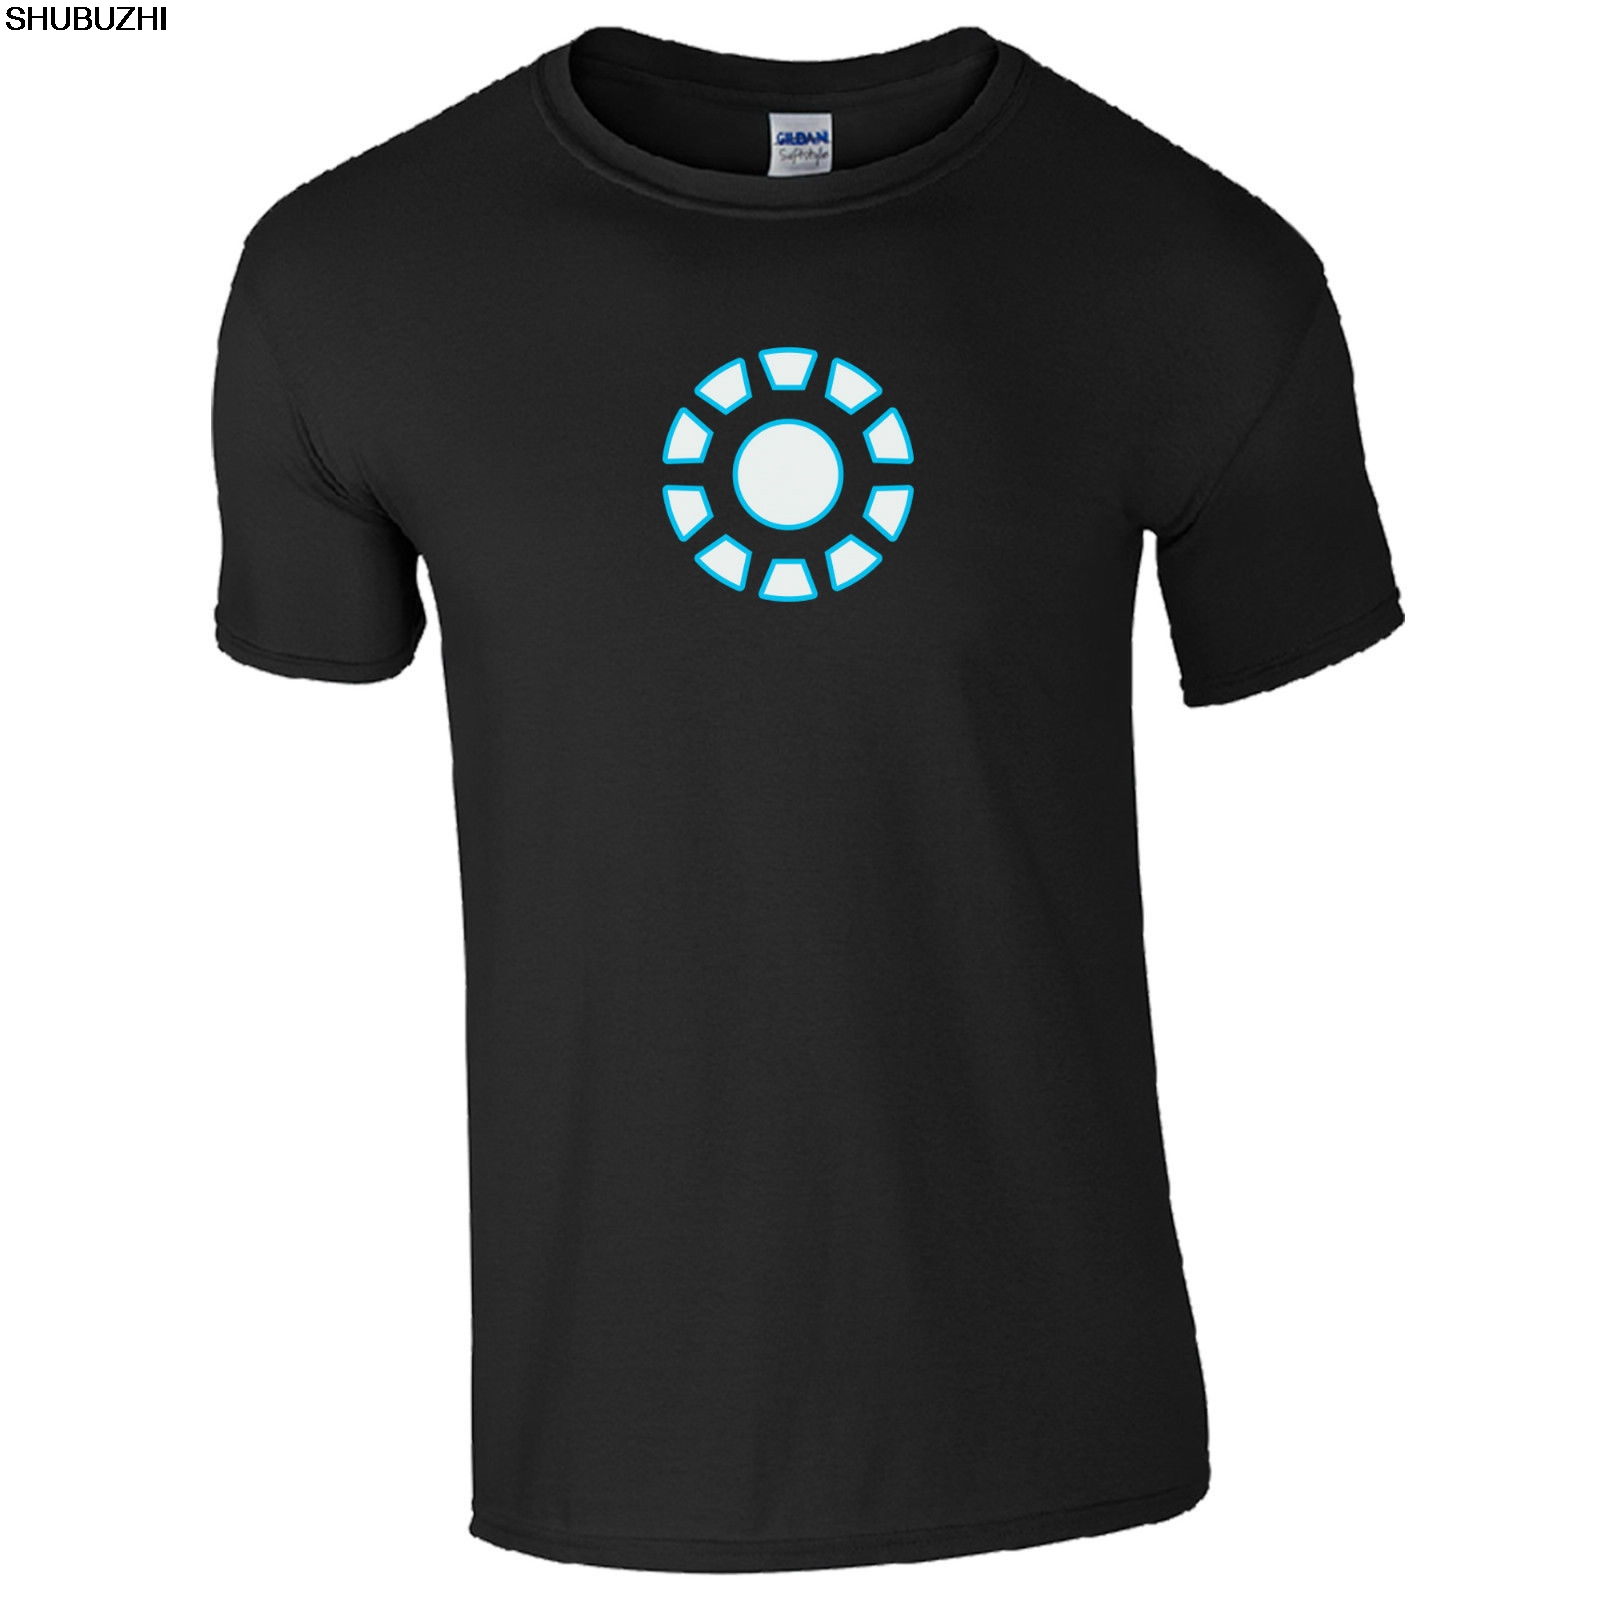 881af803f Iron Man Arc Reactor T-Shirt - Stark Inspired Tony Industries Kids Mens  Gift Top